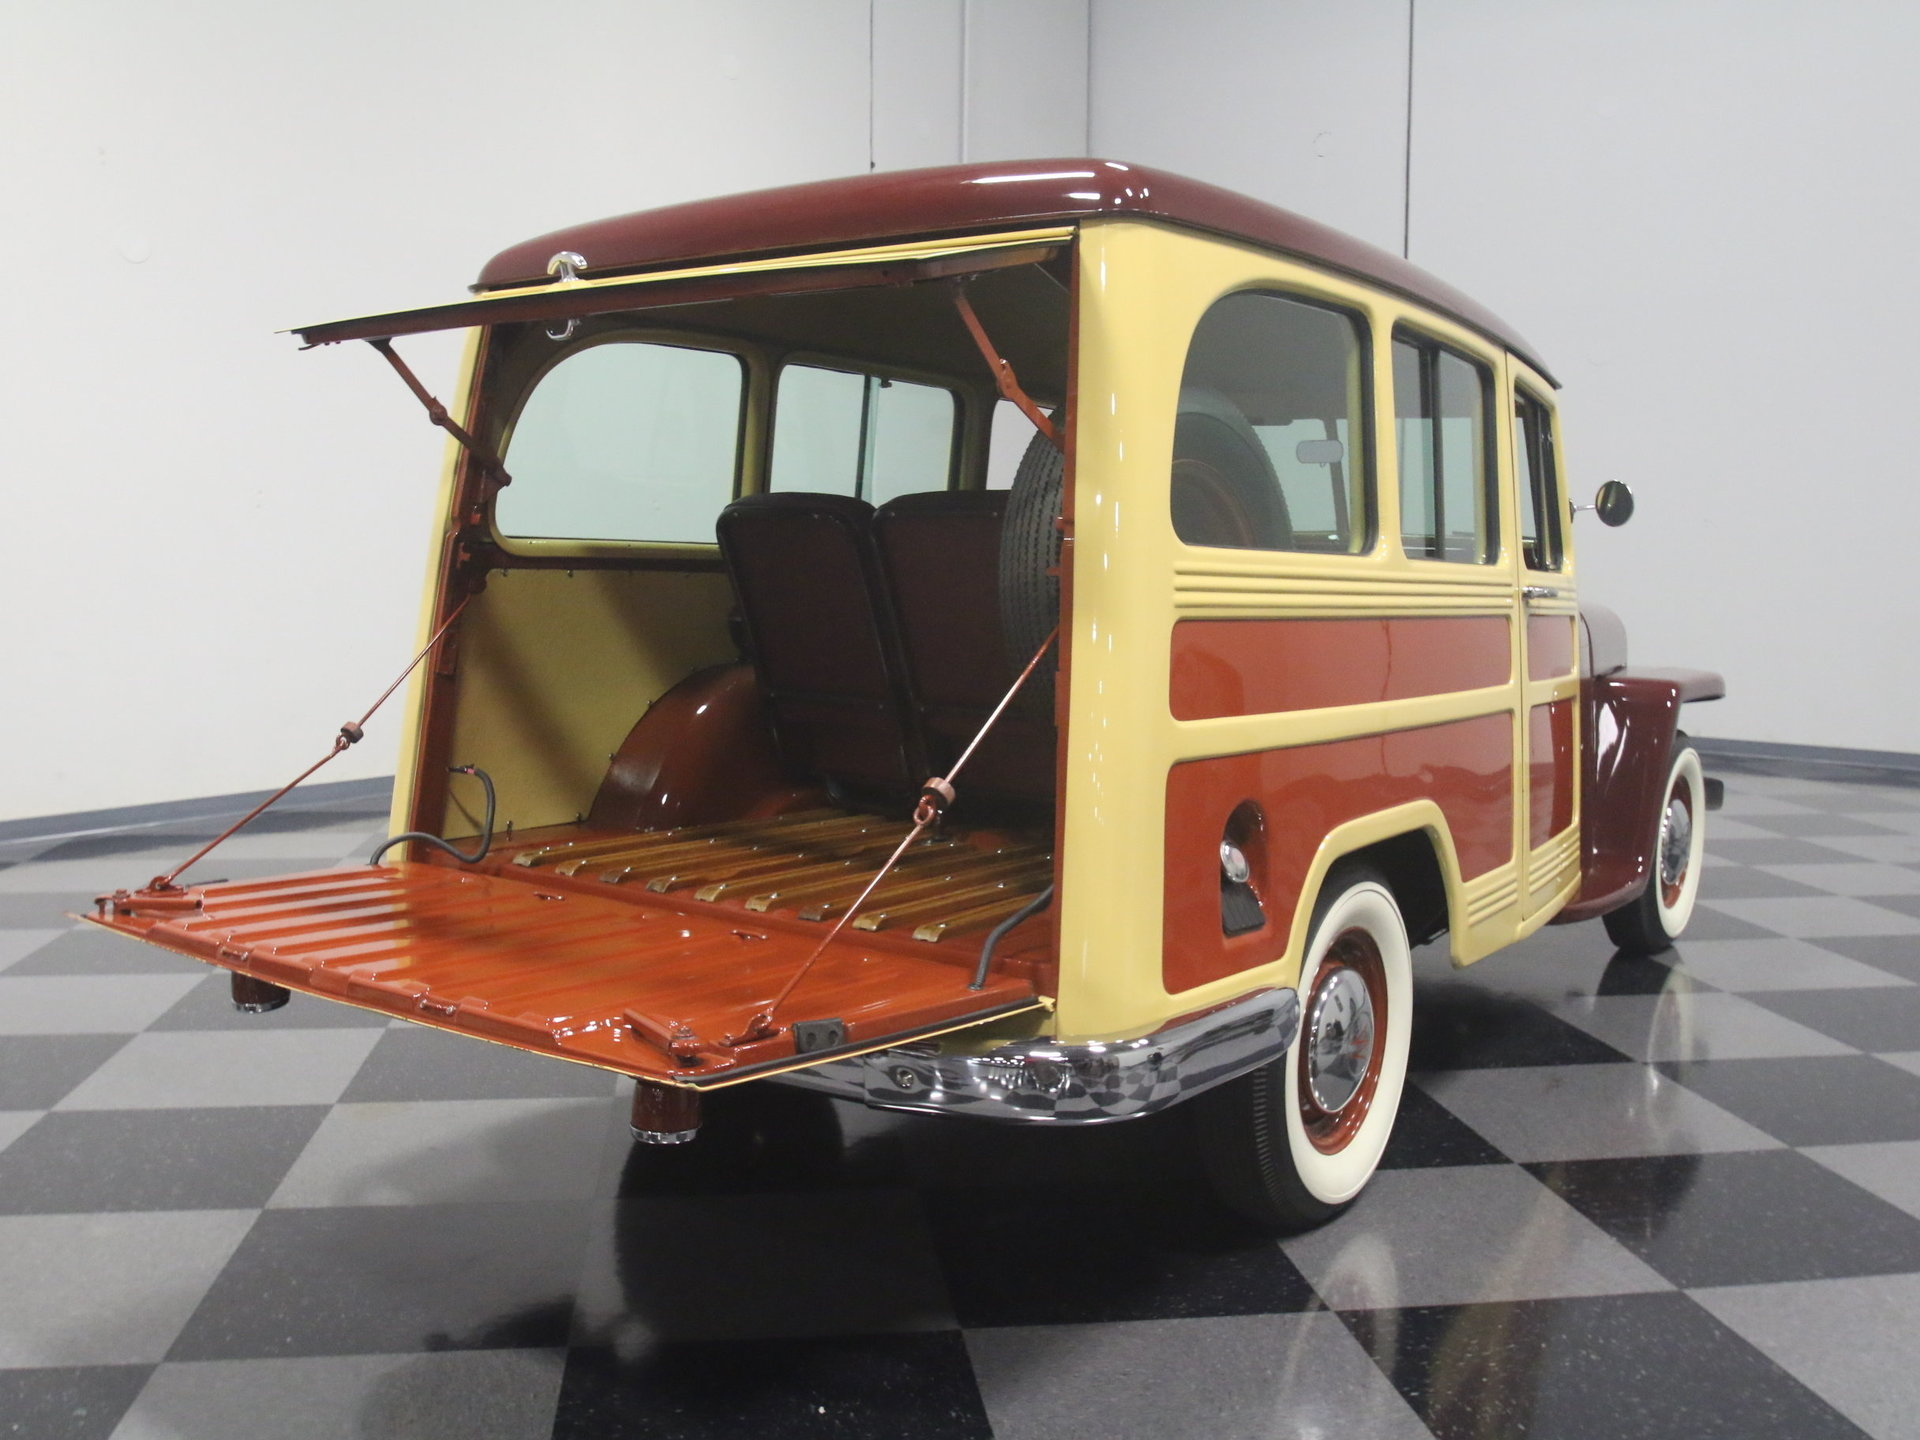 1950 Willys Station Wagon : DOCUMENTED BUILD, SHOW-WINNER, NUT & BOLT RESTO, HURRICANE I4, MANUAL, A++!!